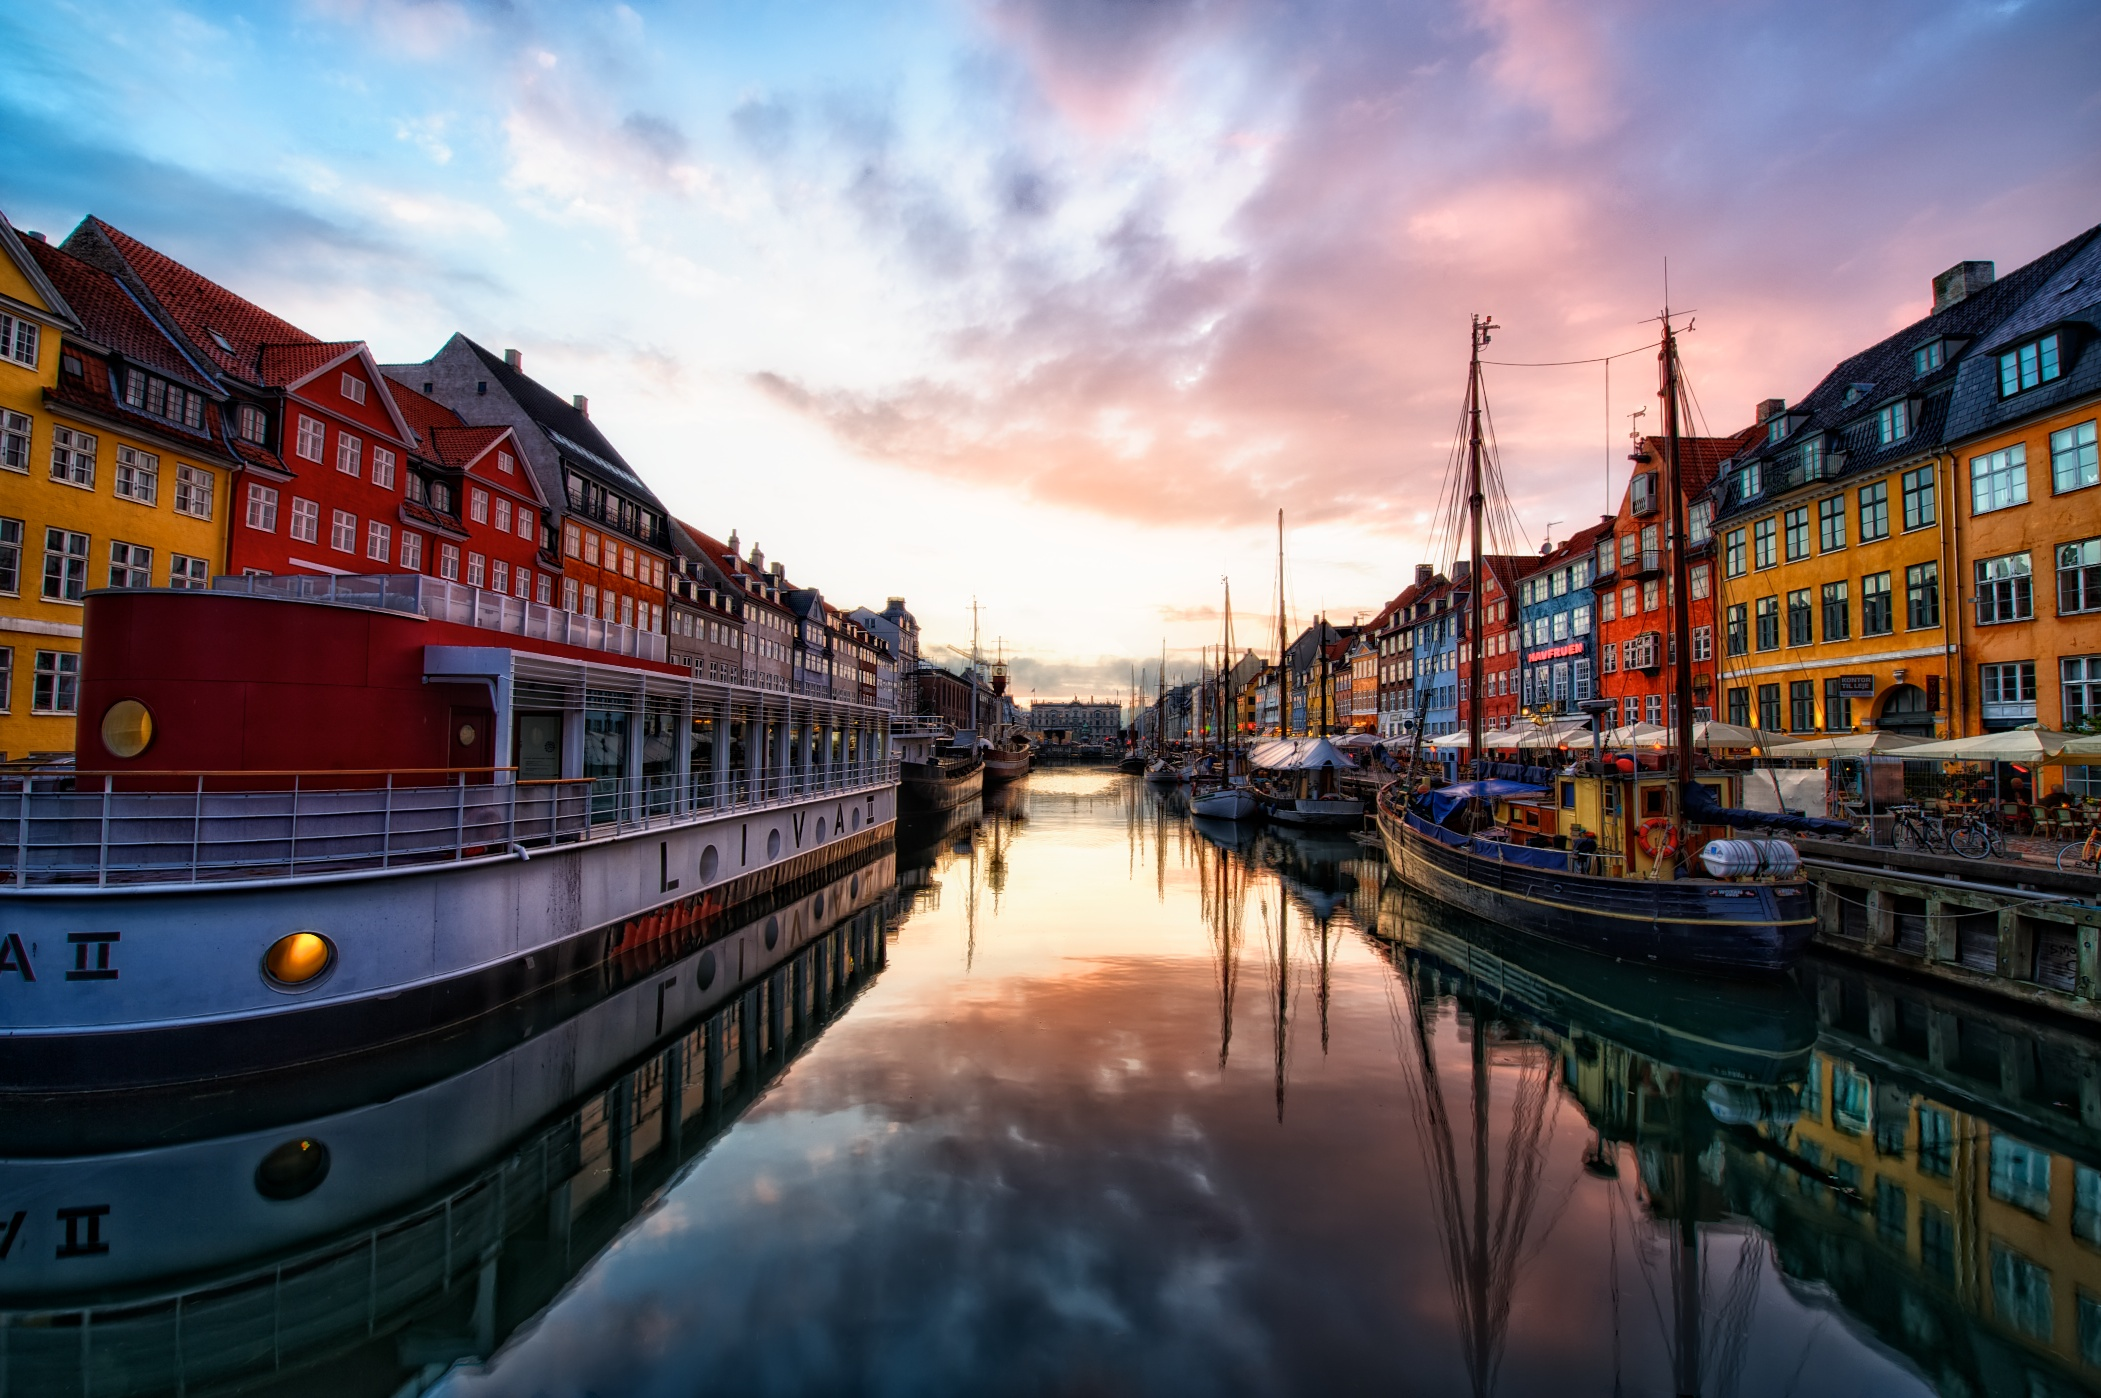 Sunset at Nyhavn.jpg